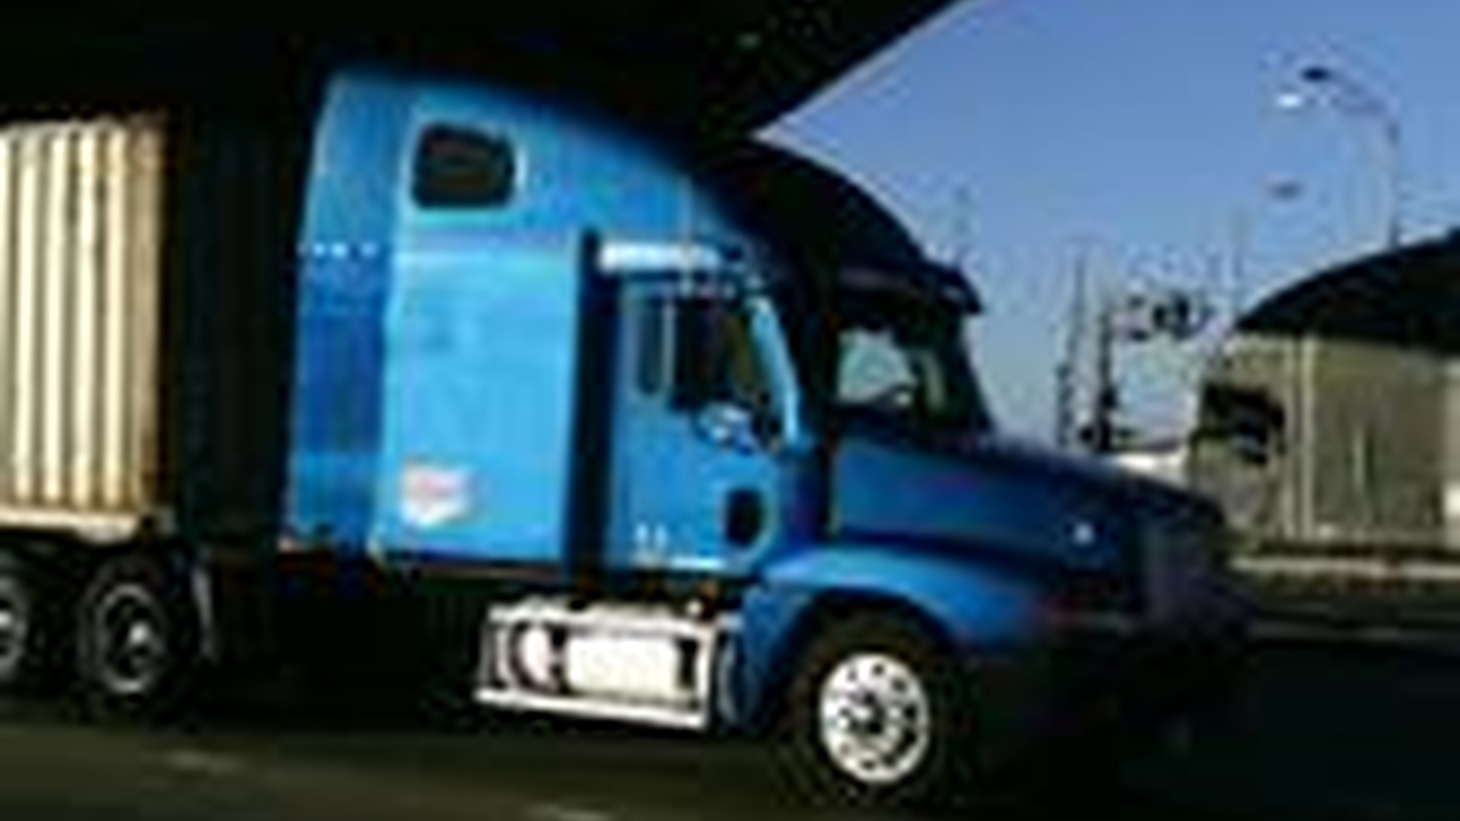 Thirty big-rigs clogged up the 110 Freeway today due to a clean air plan adopted by the Ports of Long Beach and Los Angeles. On Reporter's Notebook, LA Supervisors have backed away from starting the shut-down of King-Drew Hospital. Is that a mistake?